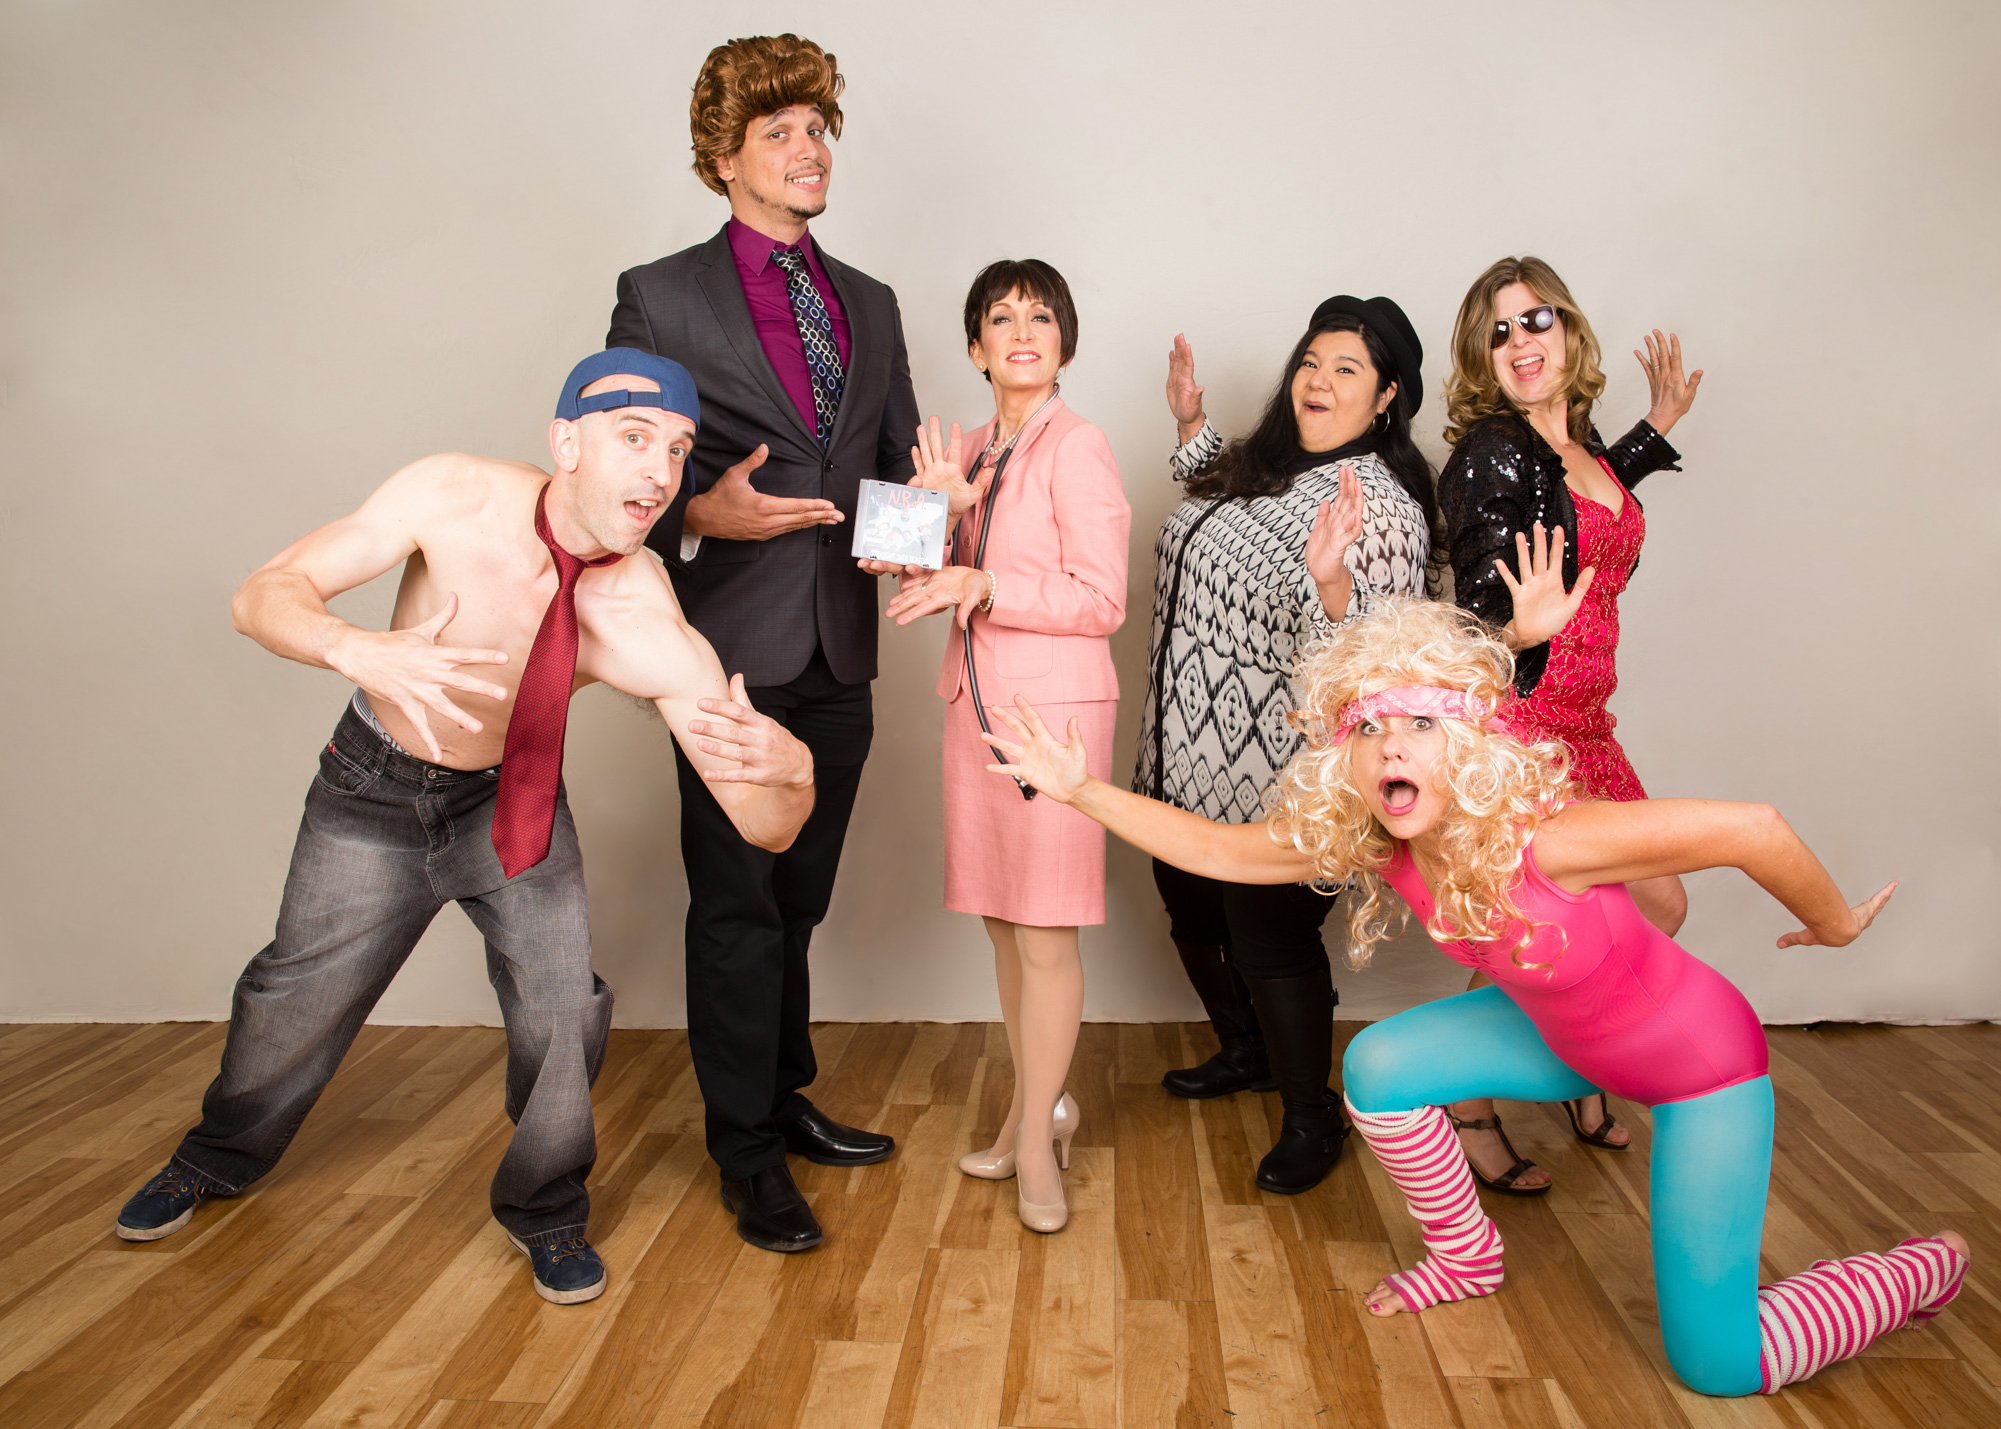 """Cast photo of political satire comedy variety show """"Over the Lege,"""" directed by Stephanie Chiarello Noppenberg (MPAff '08)"""